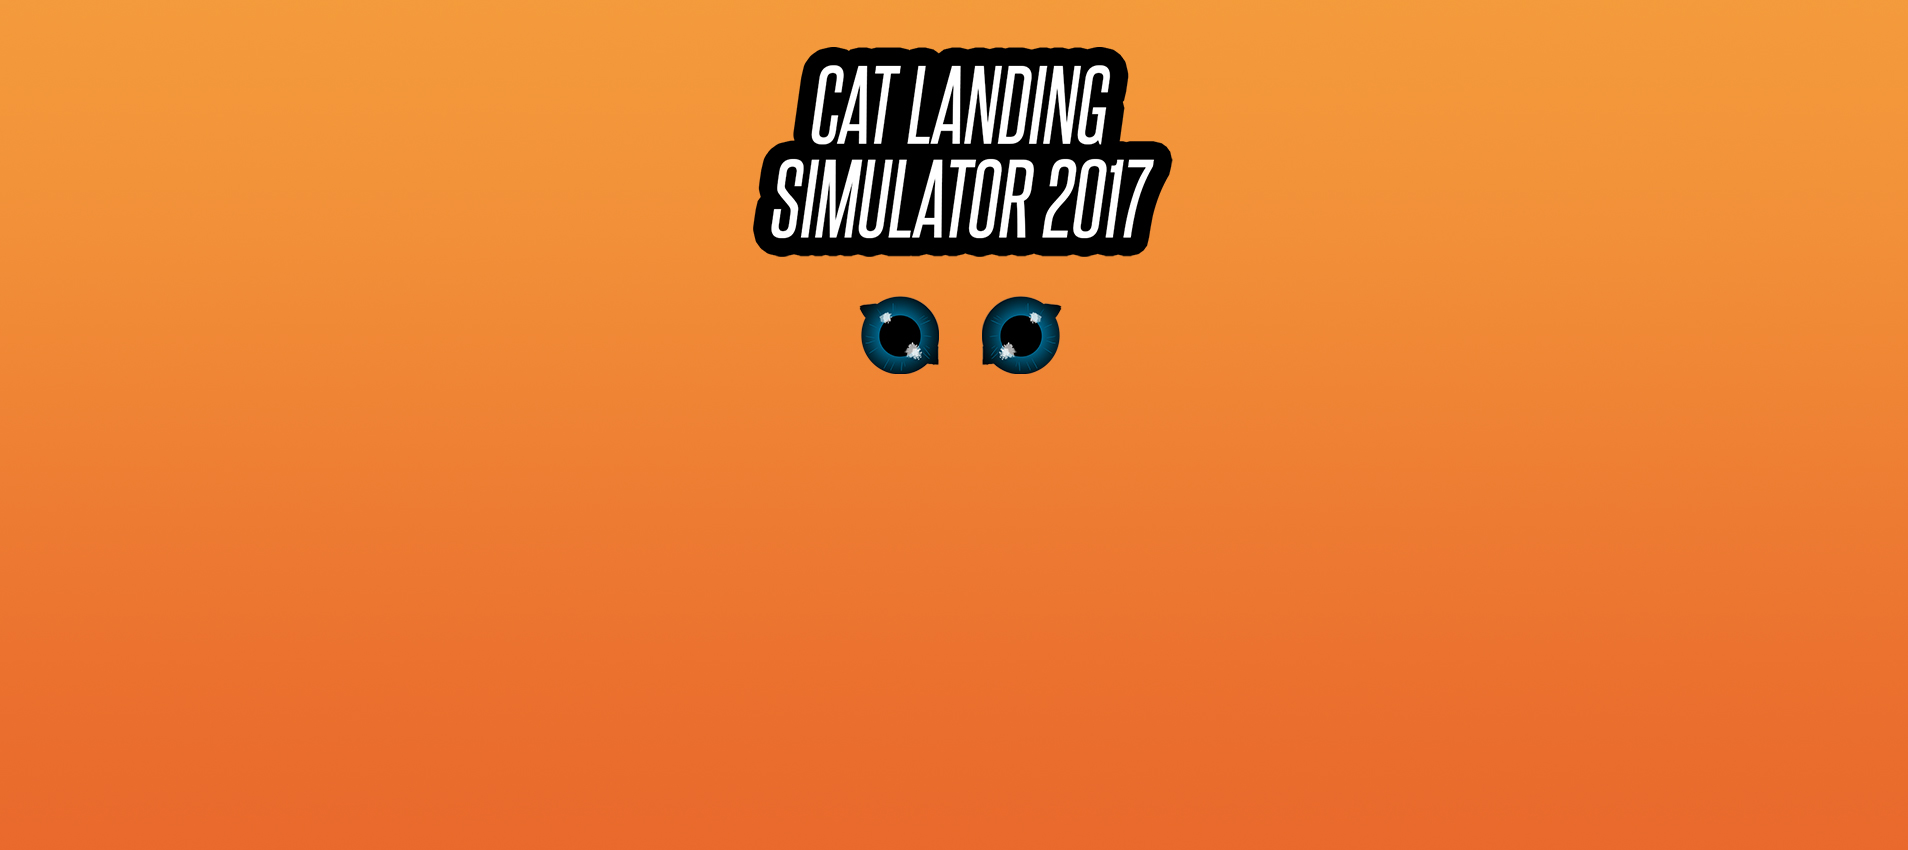 Cat Landing Simulator 2017